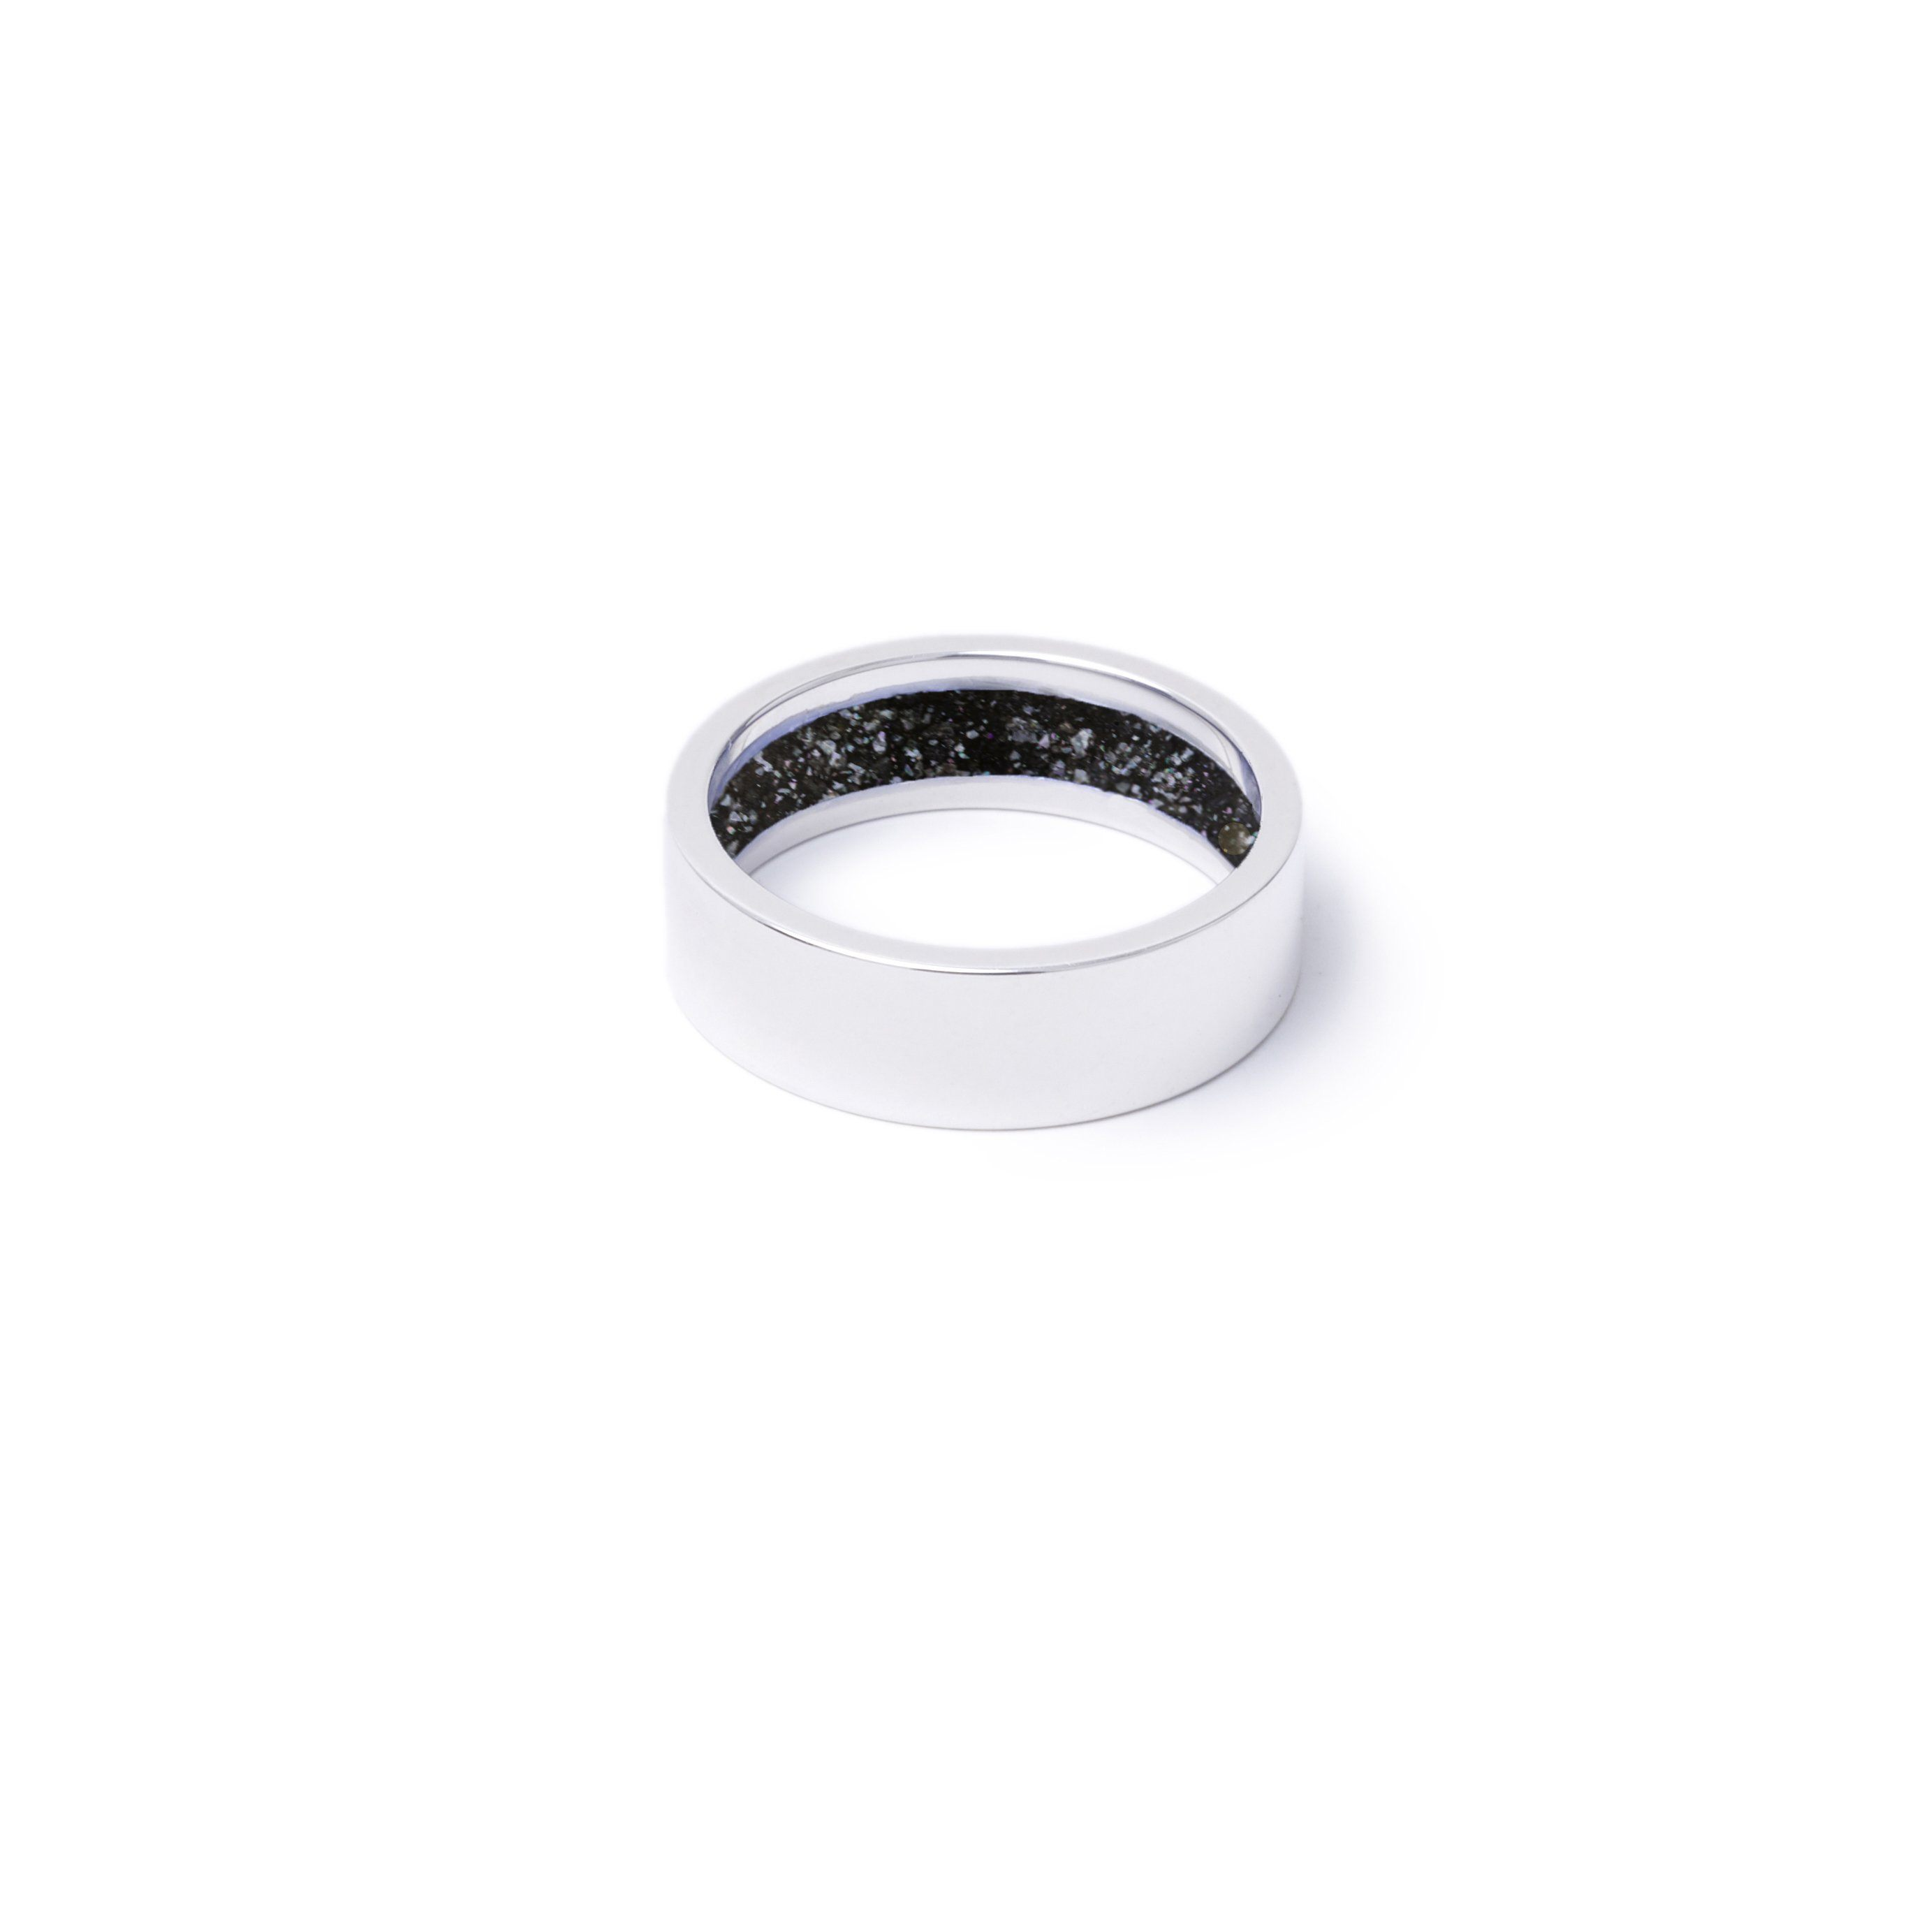 Everence Ring, Sterling Silver everence.life 6mm Charcoal